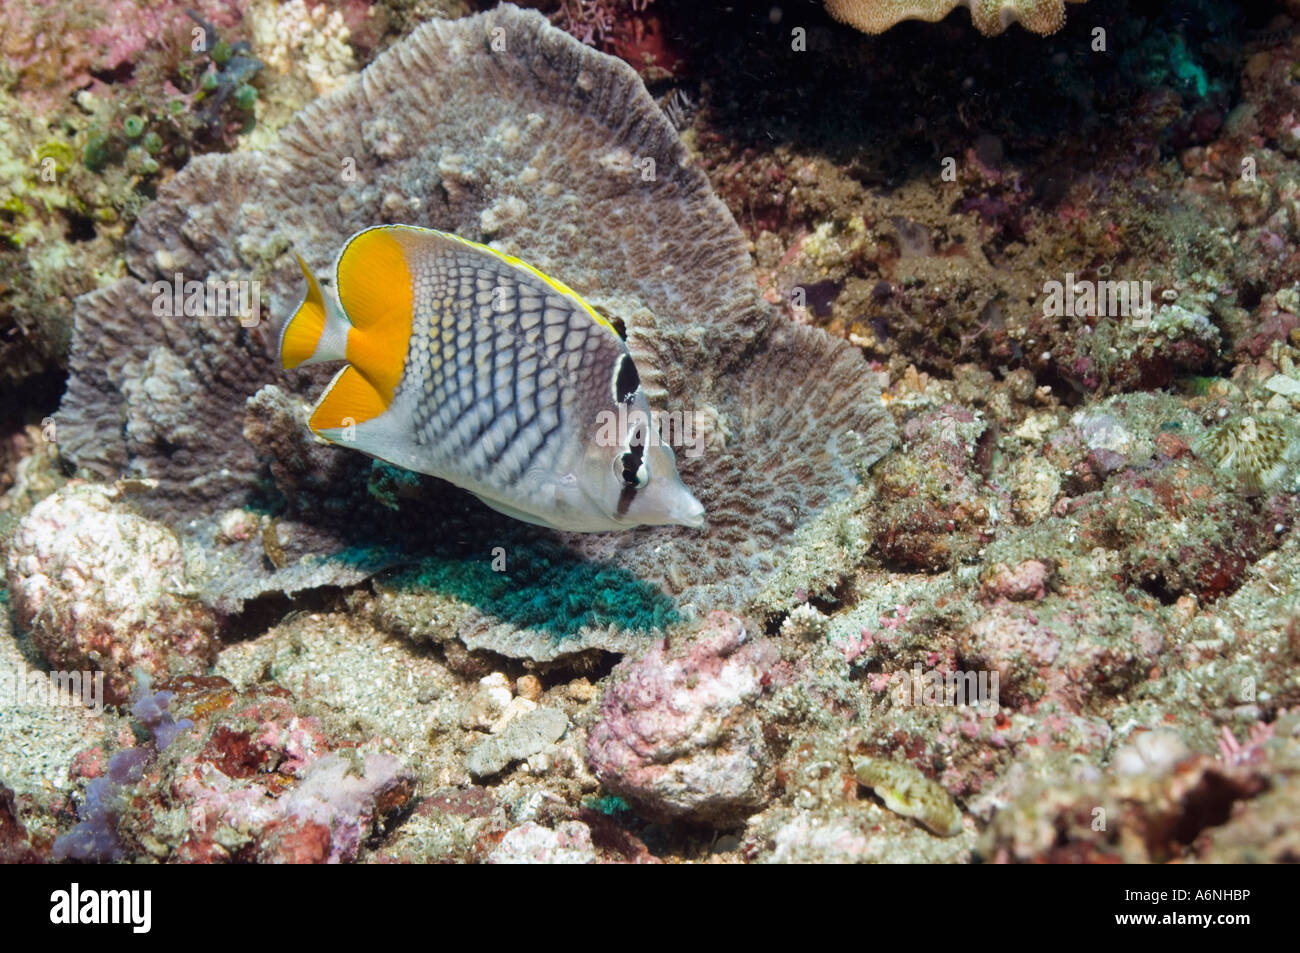 Cross hatched butterflyfish - Stock Image